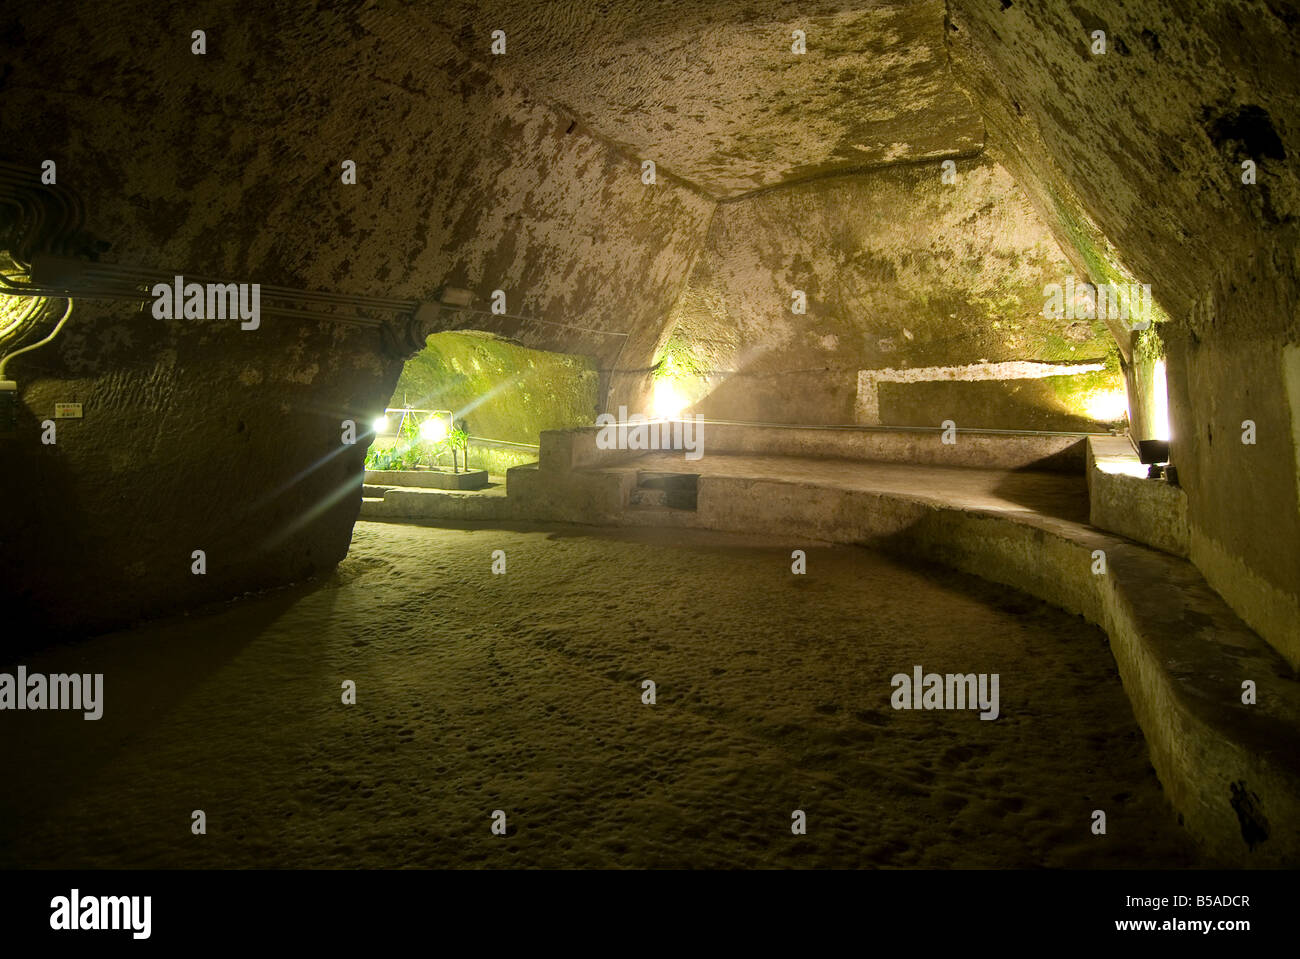 Subterranean Naples, part of an ancient Greek underground water cistern system, now open to tourists, Campania, - Stock Image